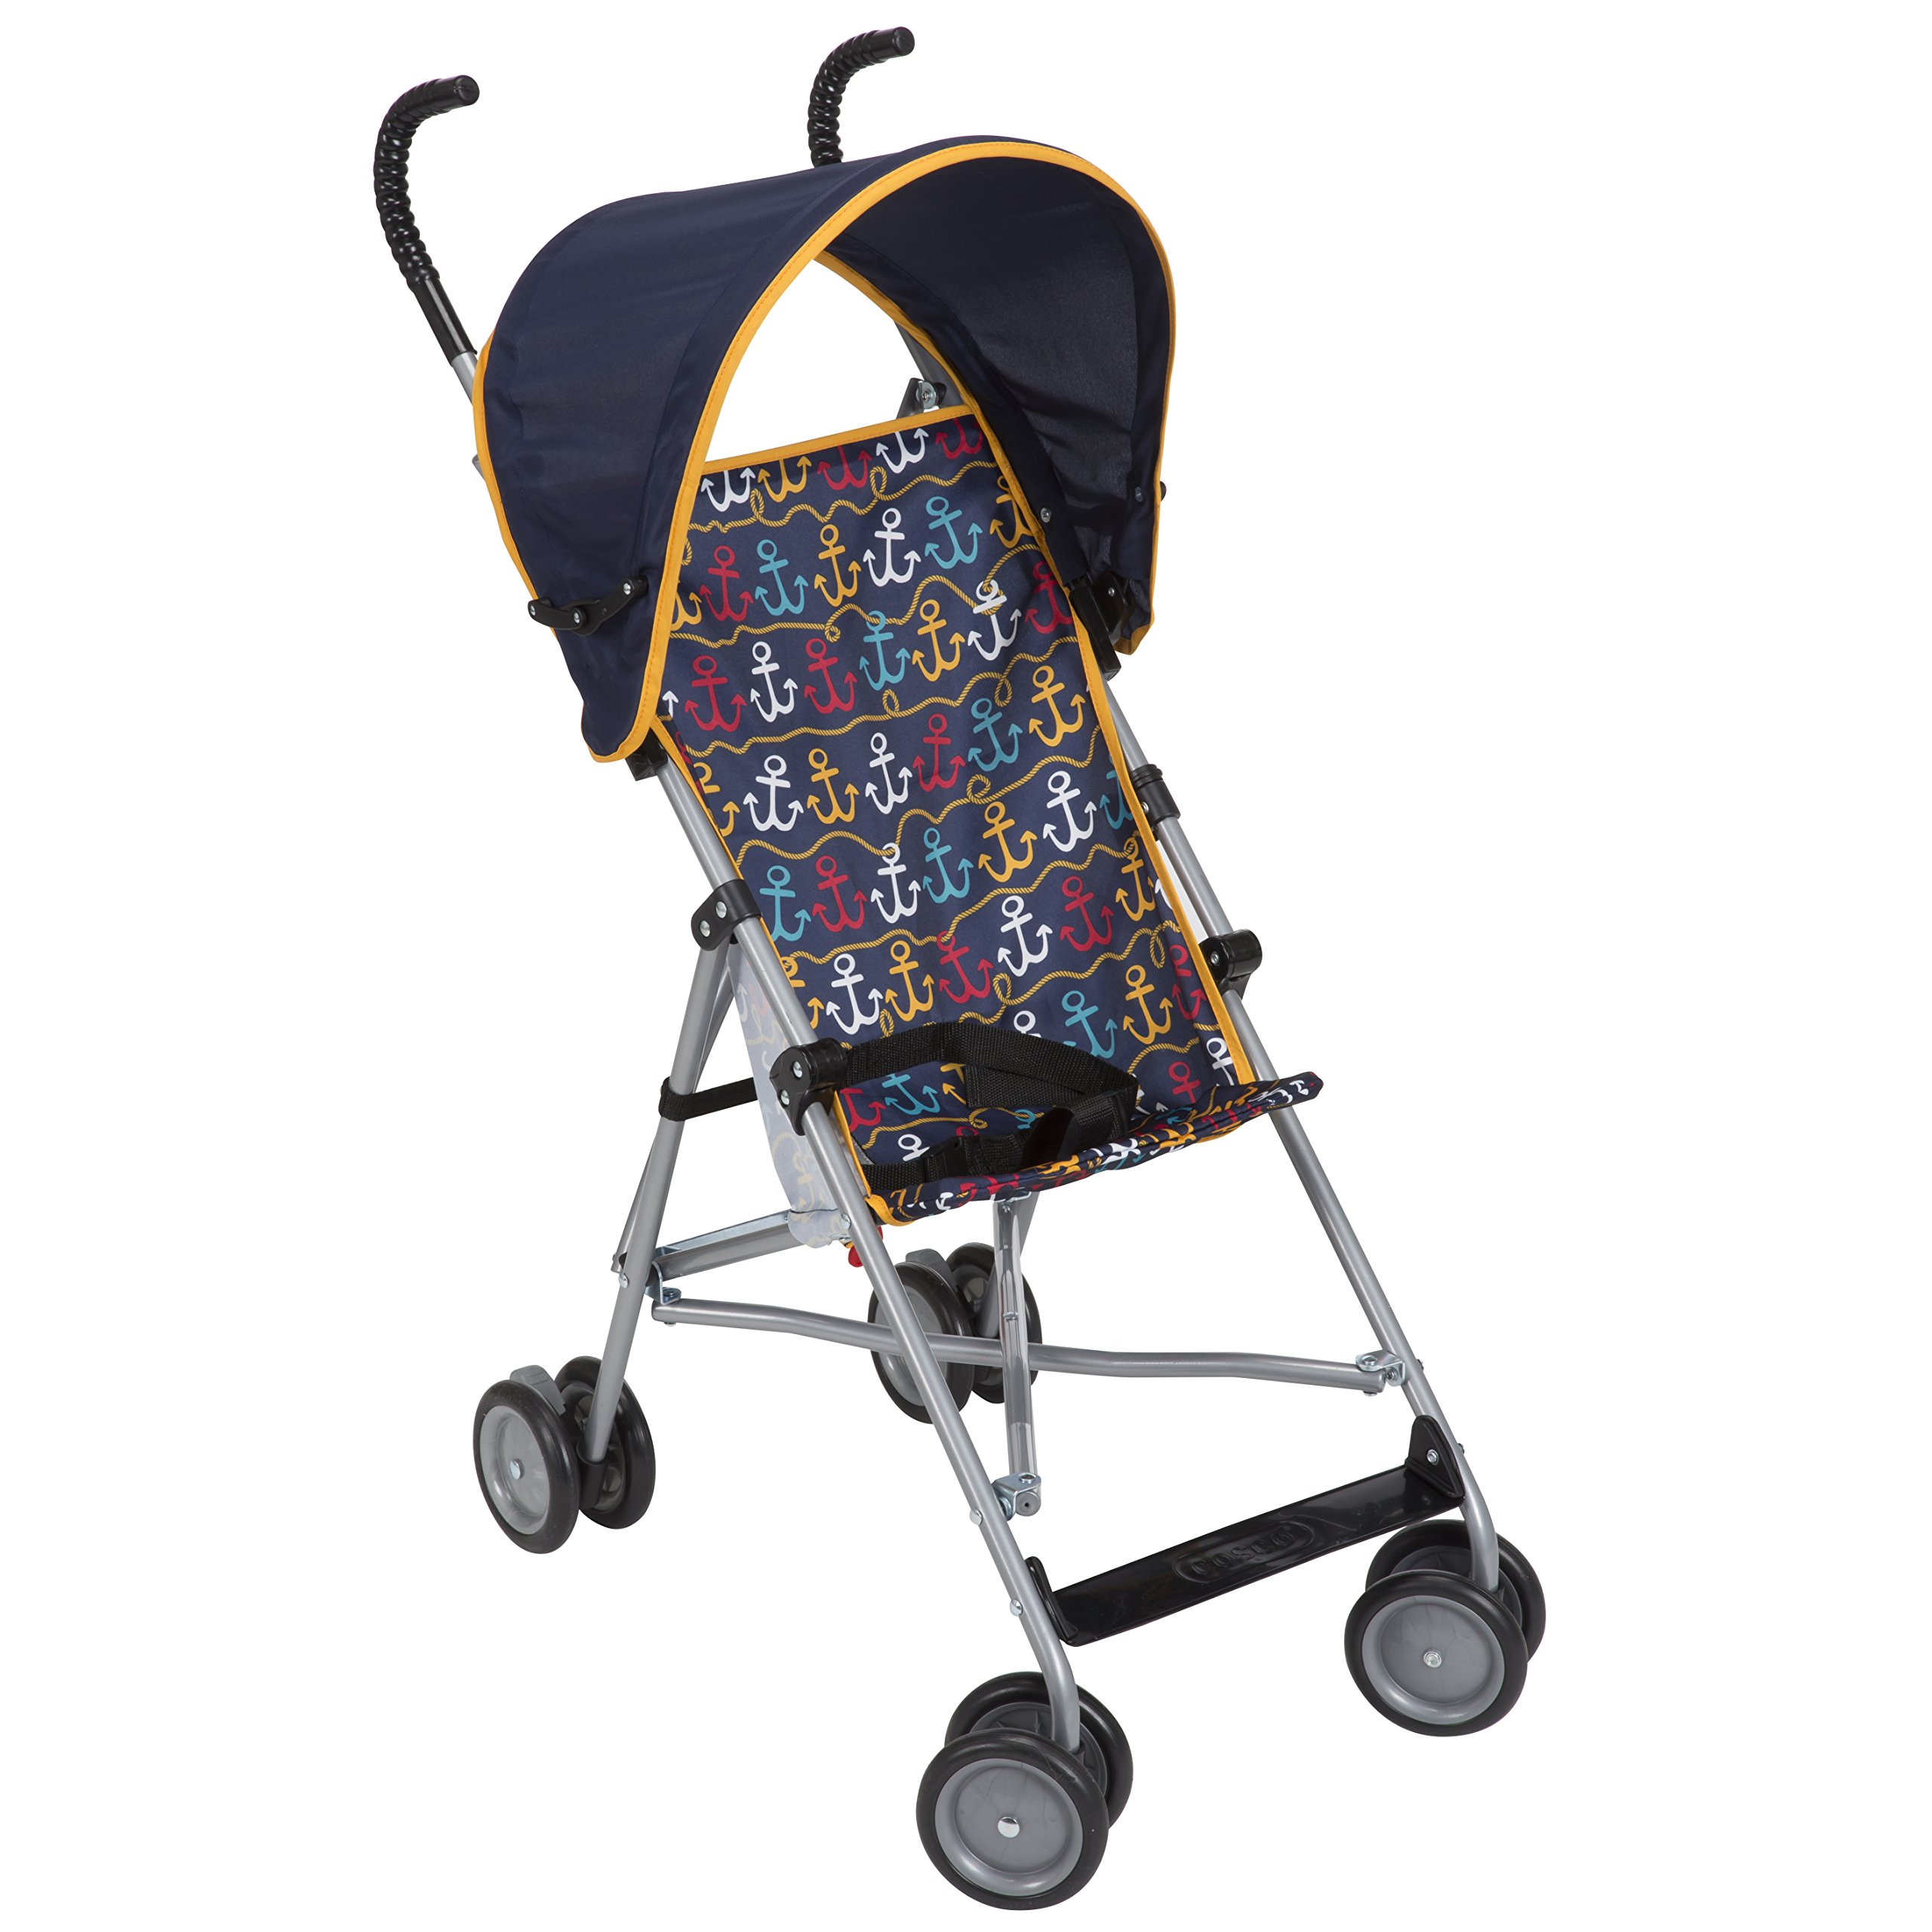 Cosco Umbrella Stroller with Canopy and Three-Point Harness, Foldable Design, Anchors Away